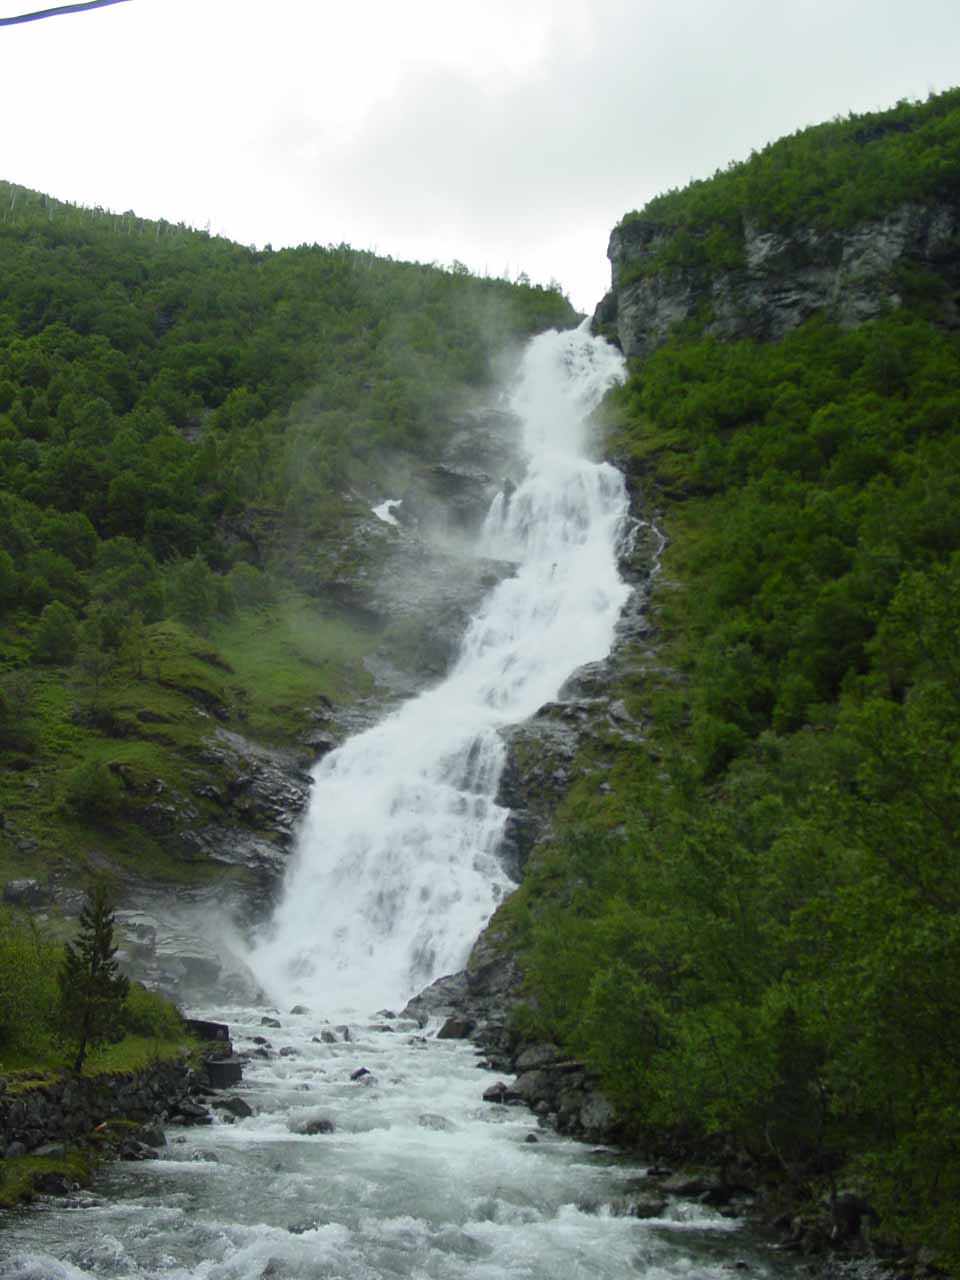 Looking directly at Hjellefossen from the road bridge, but note the annoying power line above that we were trying to avoid